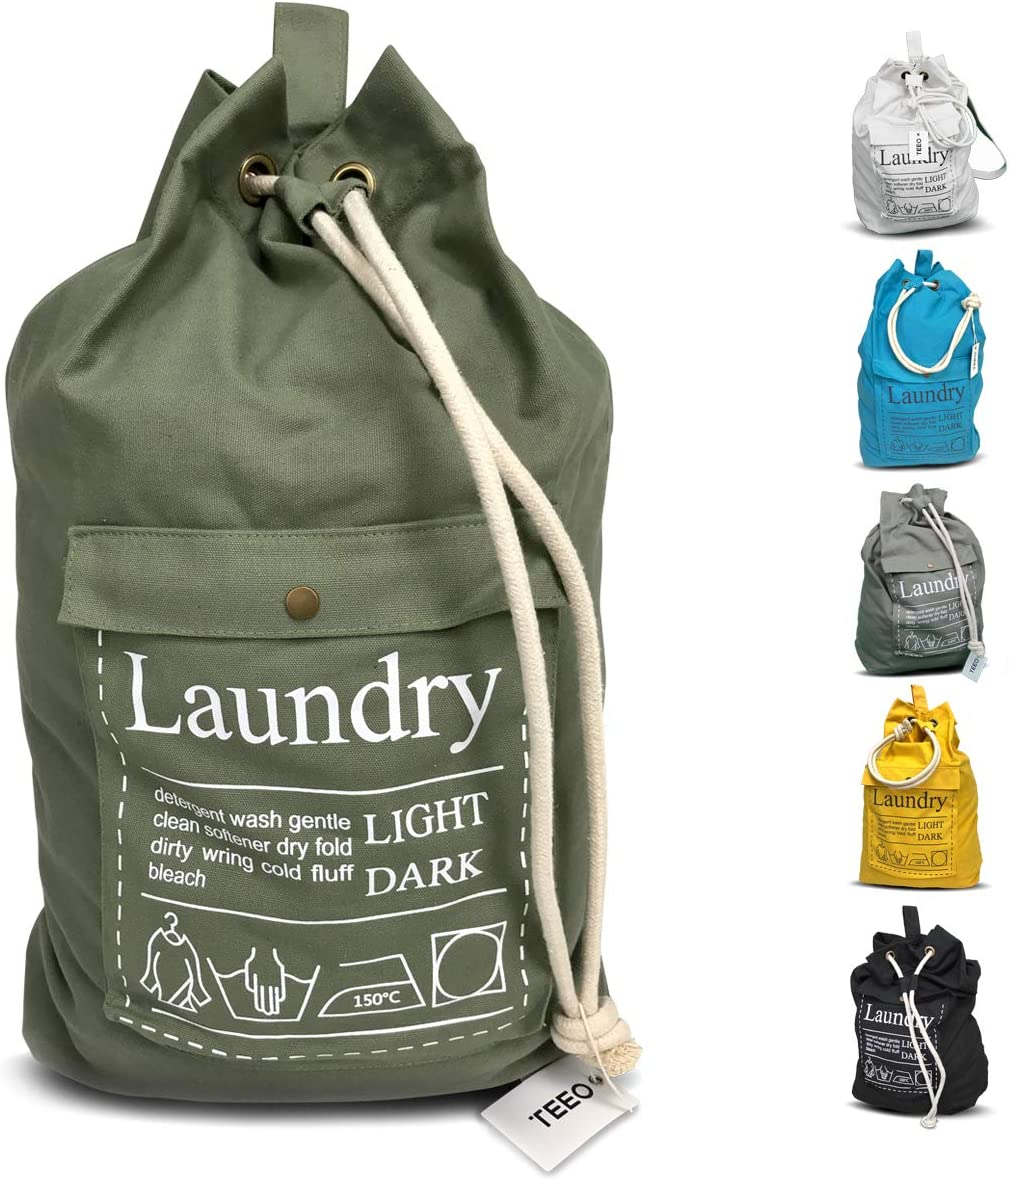 "Laundry Bag Backpack Large Spacious 25""X20"" Drawstring Sturdy Cotton Canvas with Strap for College Students Dorm Room Clothes Hamper Storage Washer Organizer (Army Green)"